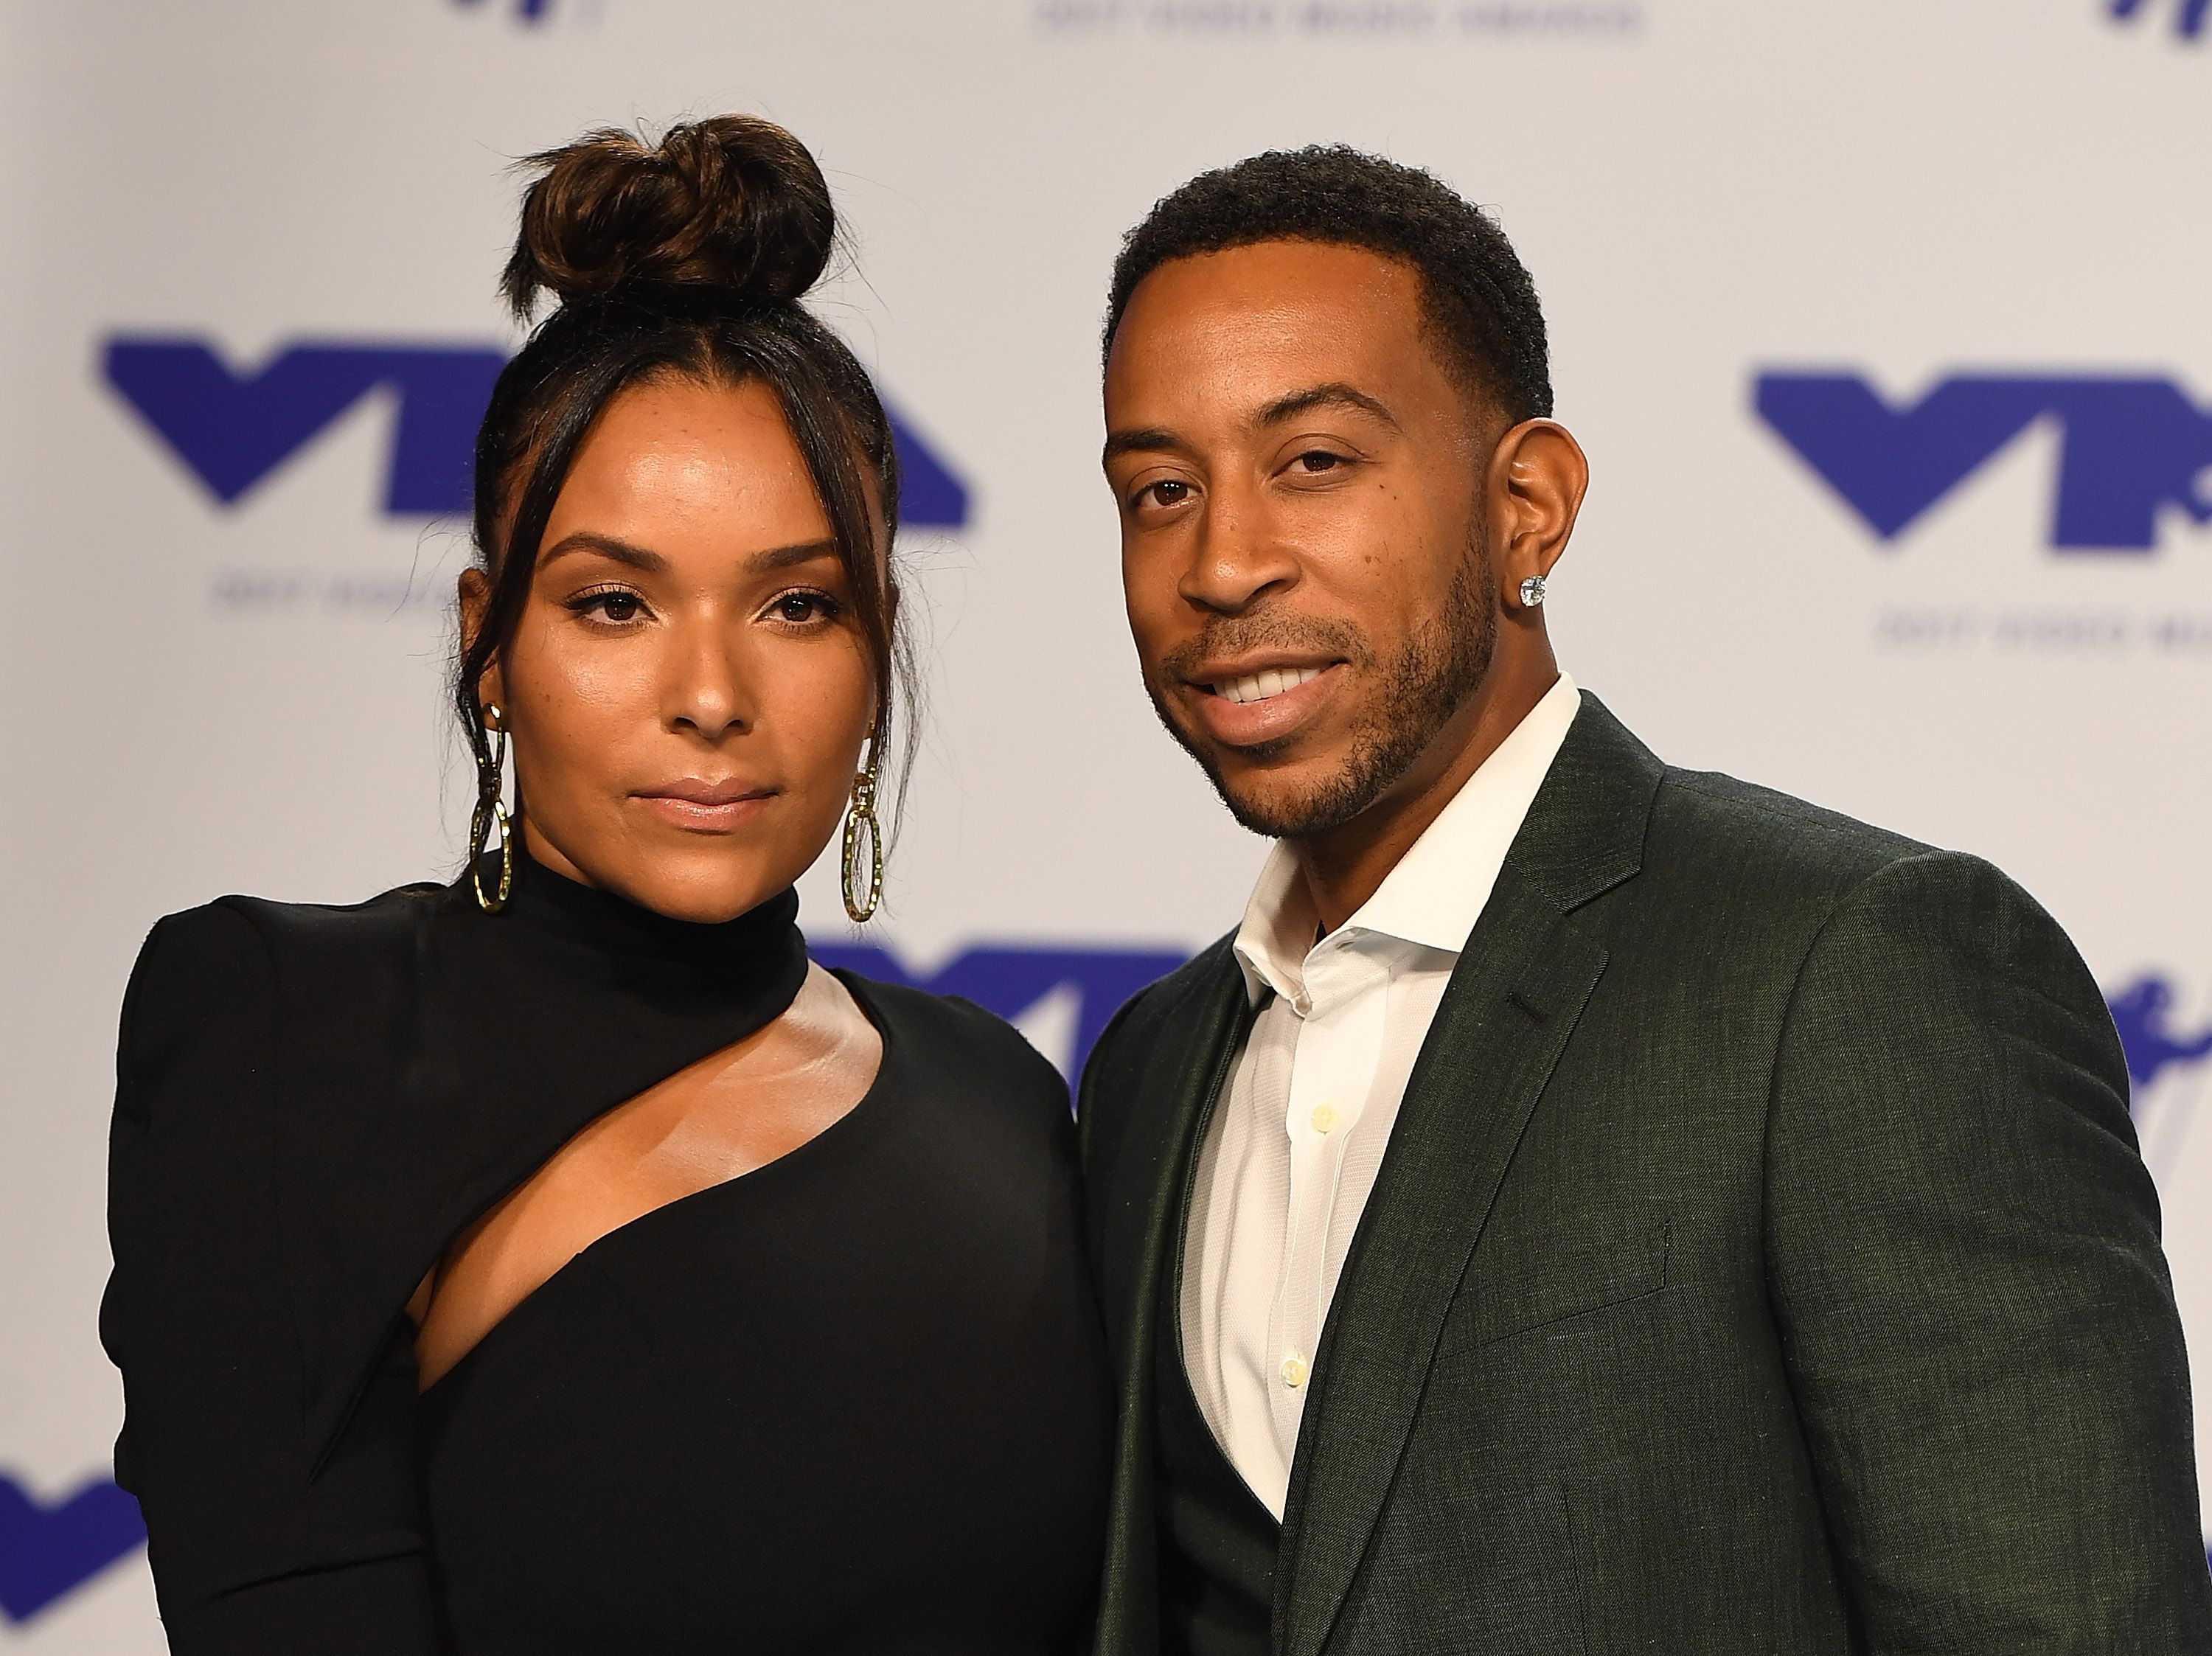 Ludacris and Eudoxie Mbouguiengue during the 2017 MTV Video Music Awards at The Forum on August 27, 2017 in Inglewood, California.| Source: Getty Images